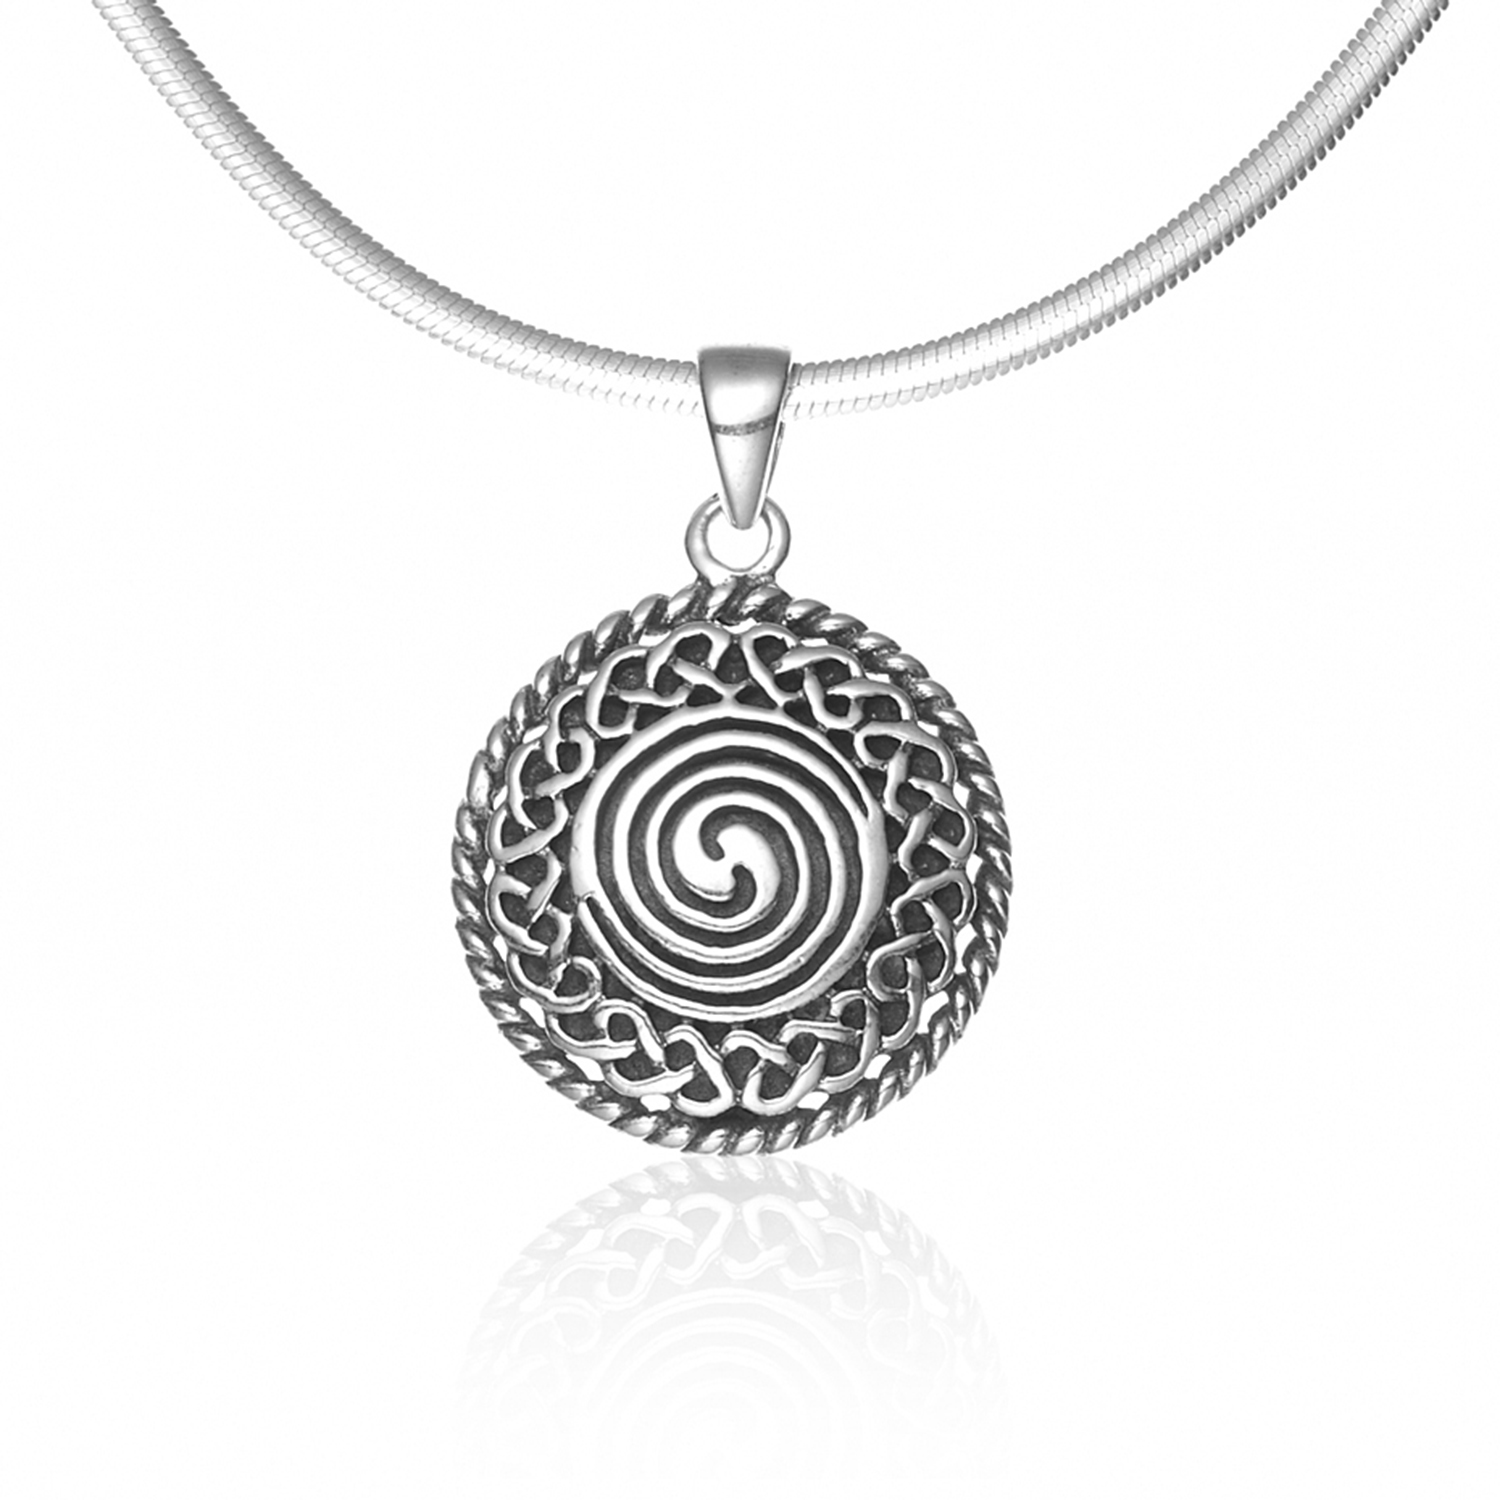 925 Sterling Silver Celtic Knot Classic Round 18 inches Style Pendant Necklace - Nickel Free